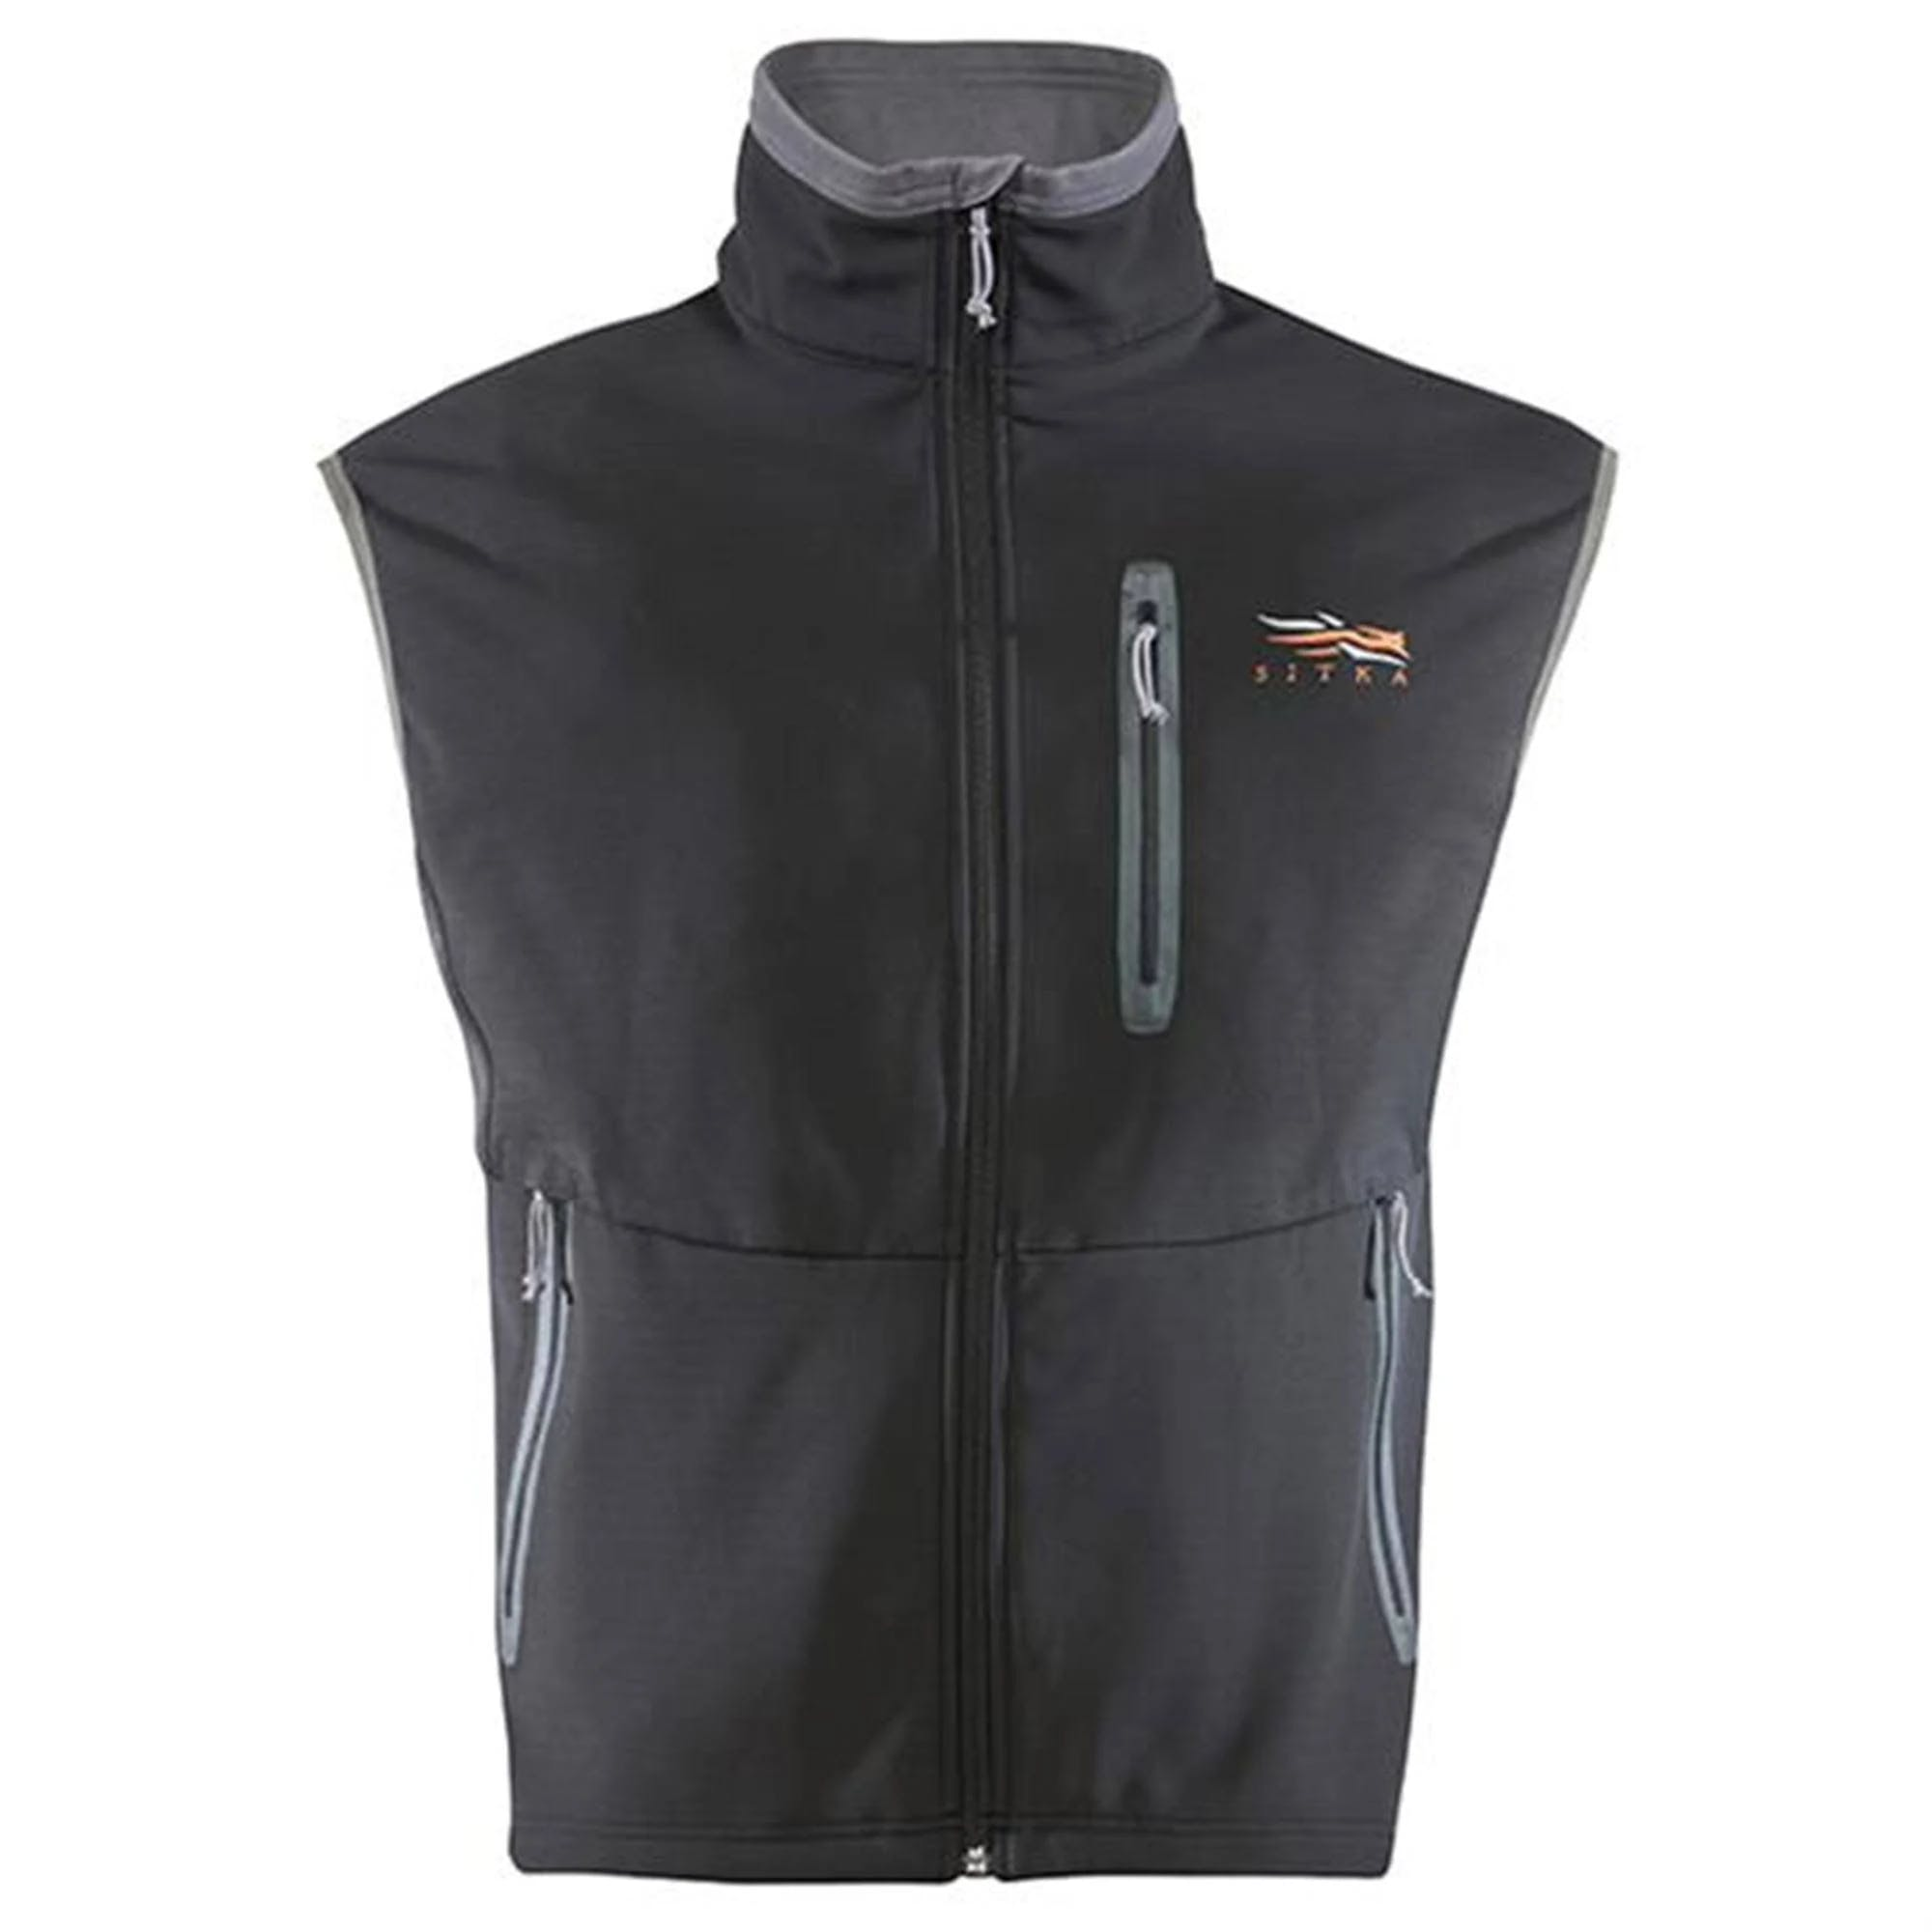 Sitka Jetstream Vest - Black Large